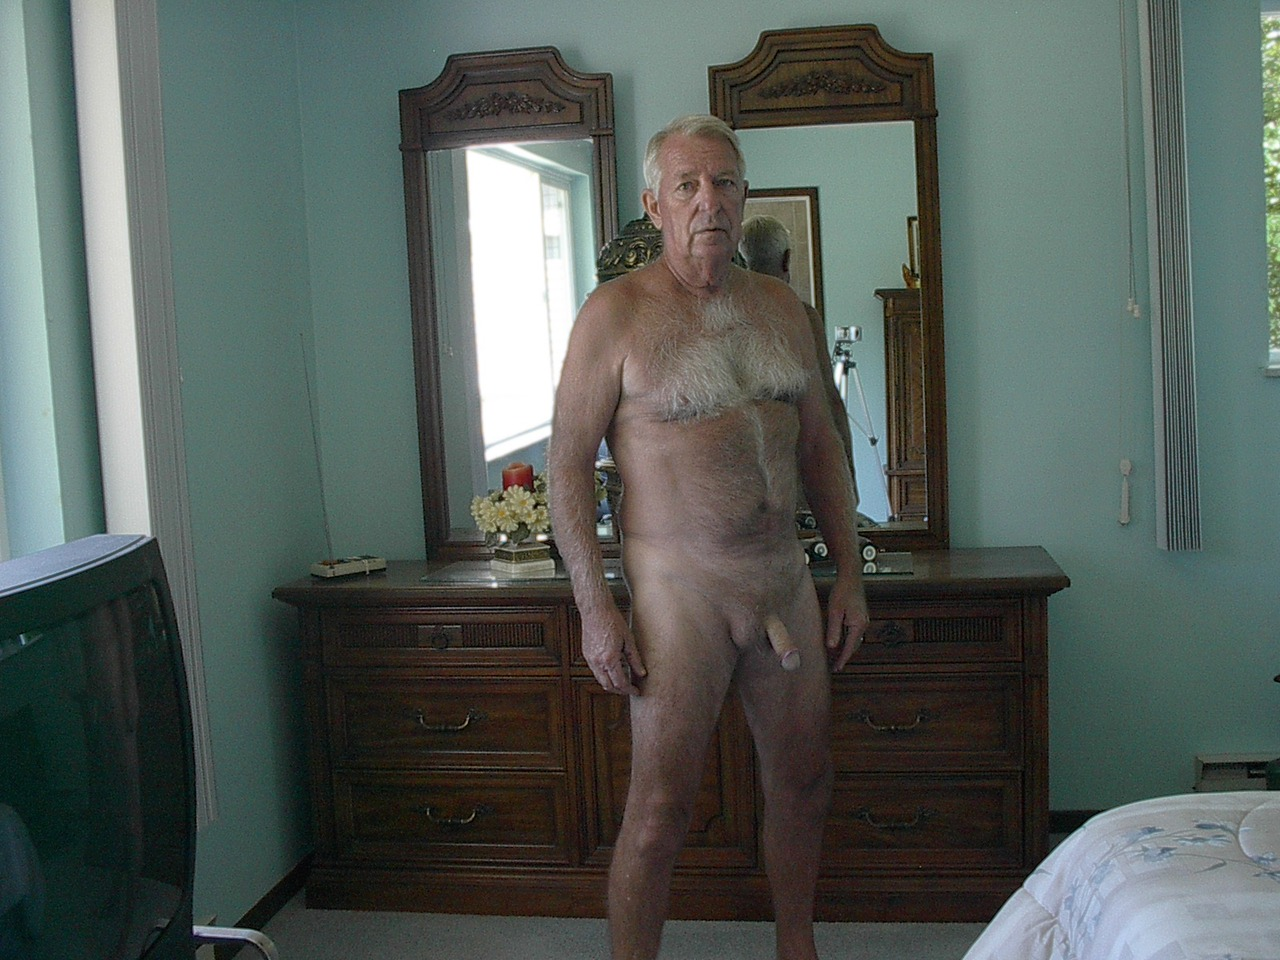 hairy chest naked gay dad